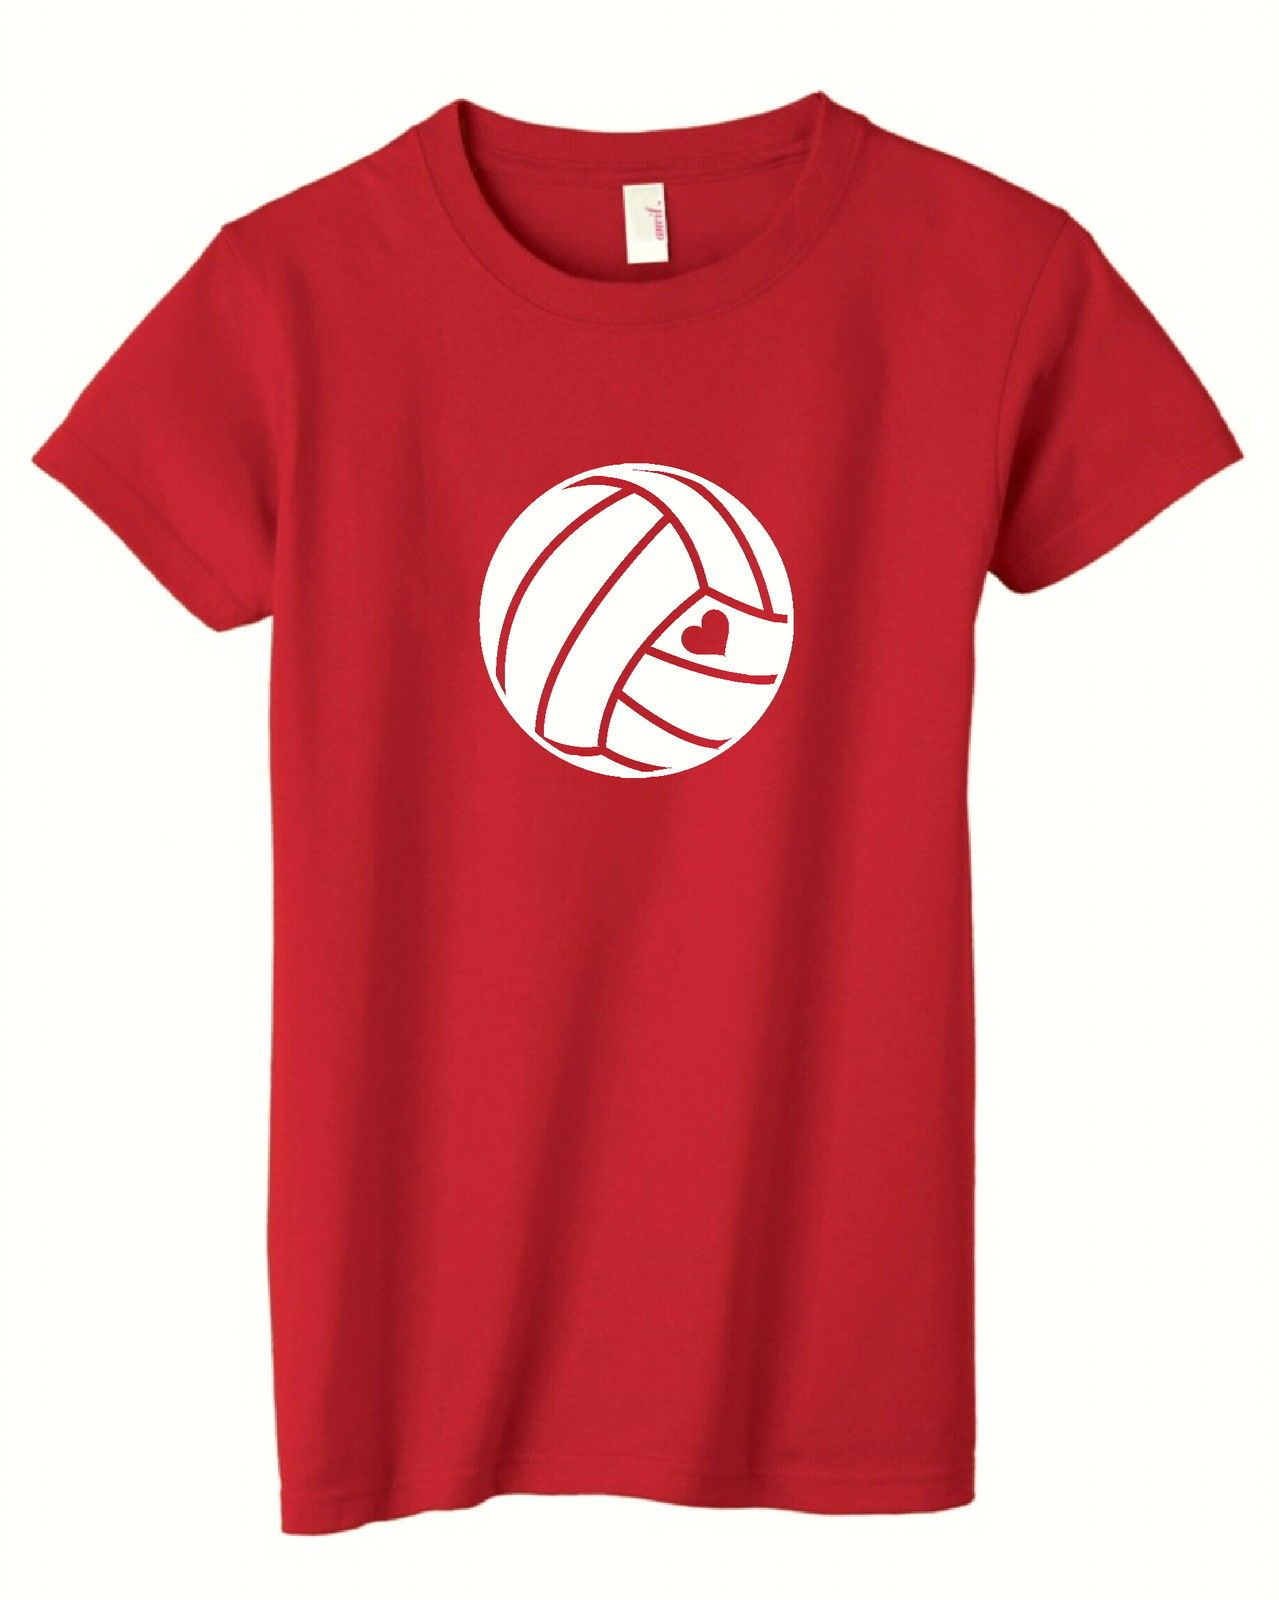 Heart Love Volleyball Red T Shirt Ladies Volleyball Tshirts Volleyball Tshirt Designs Volleyball Shirts